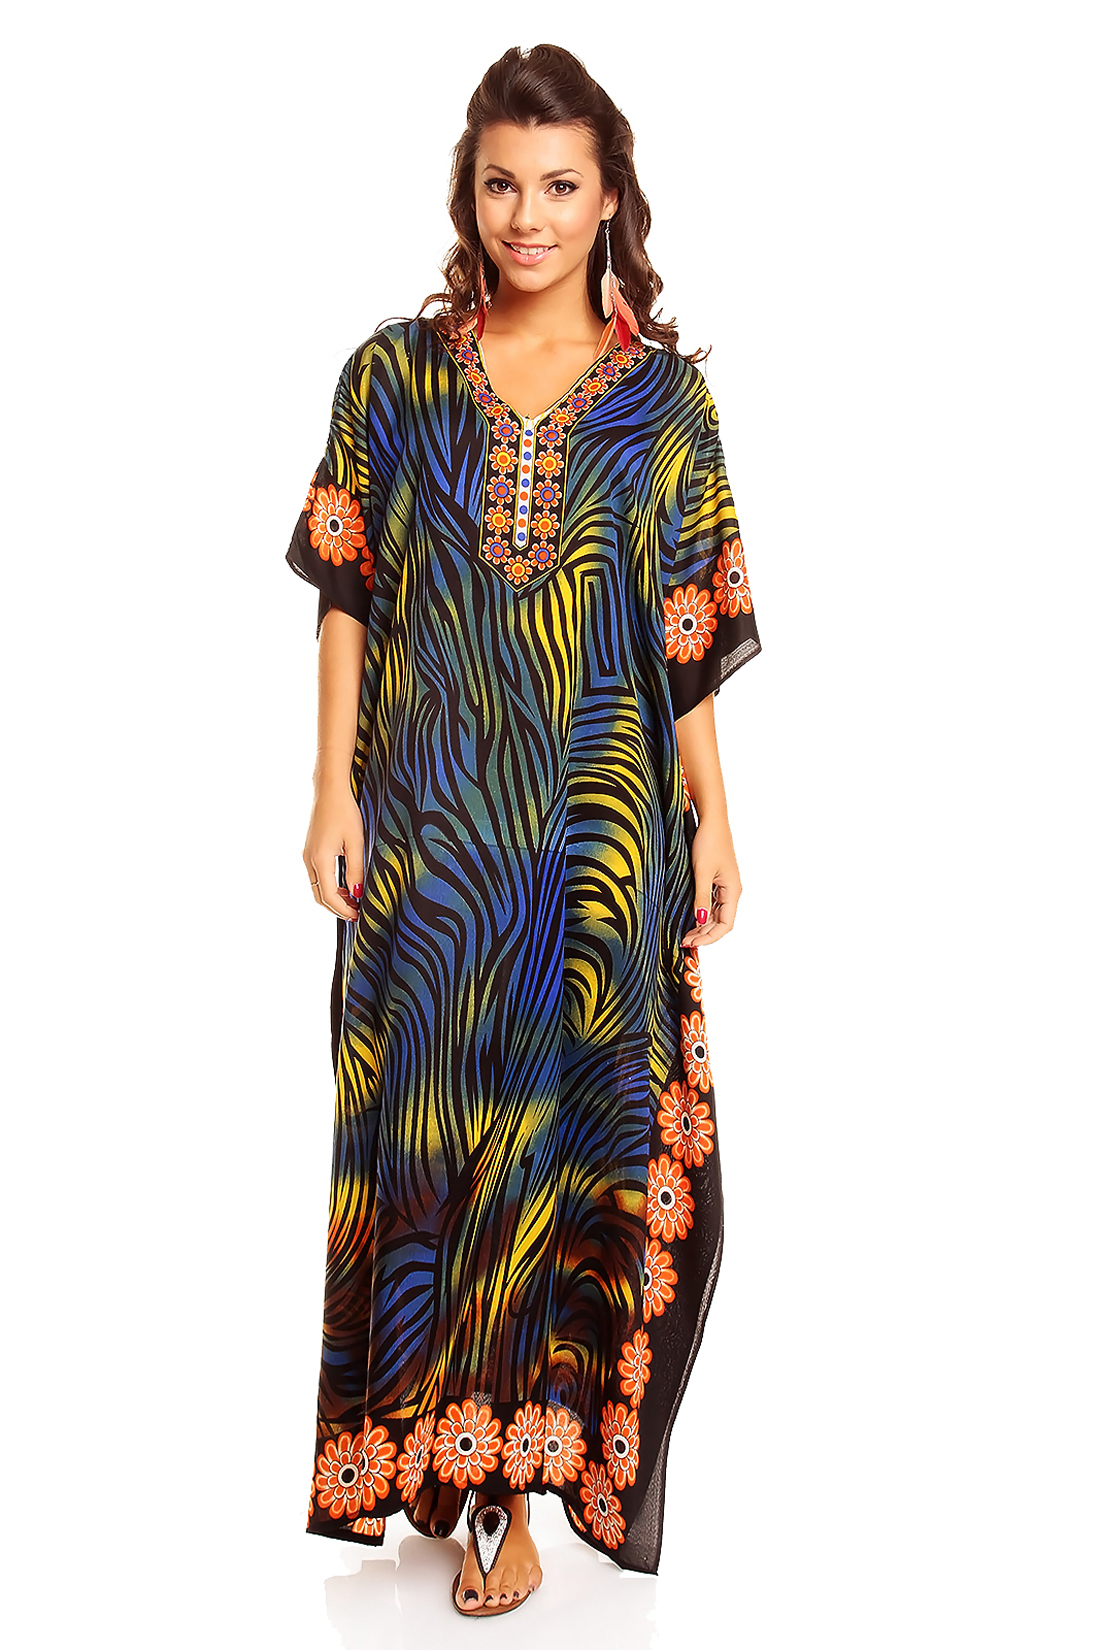 plus size dating uk At simply be, you'll find the latest plus size fashion clothing available in sizes 8-28 from plus size jeans and dresses to trendy tops, simply be's women's clothing features fashionable outfits for every occasion.